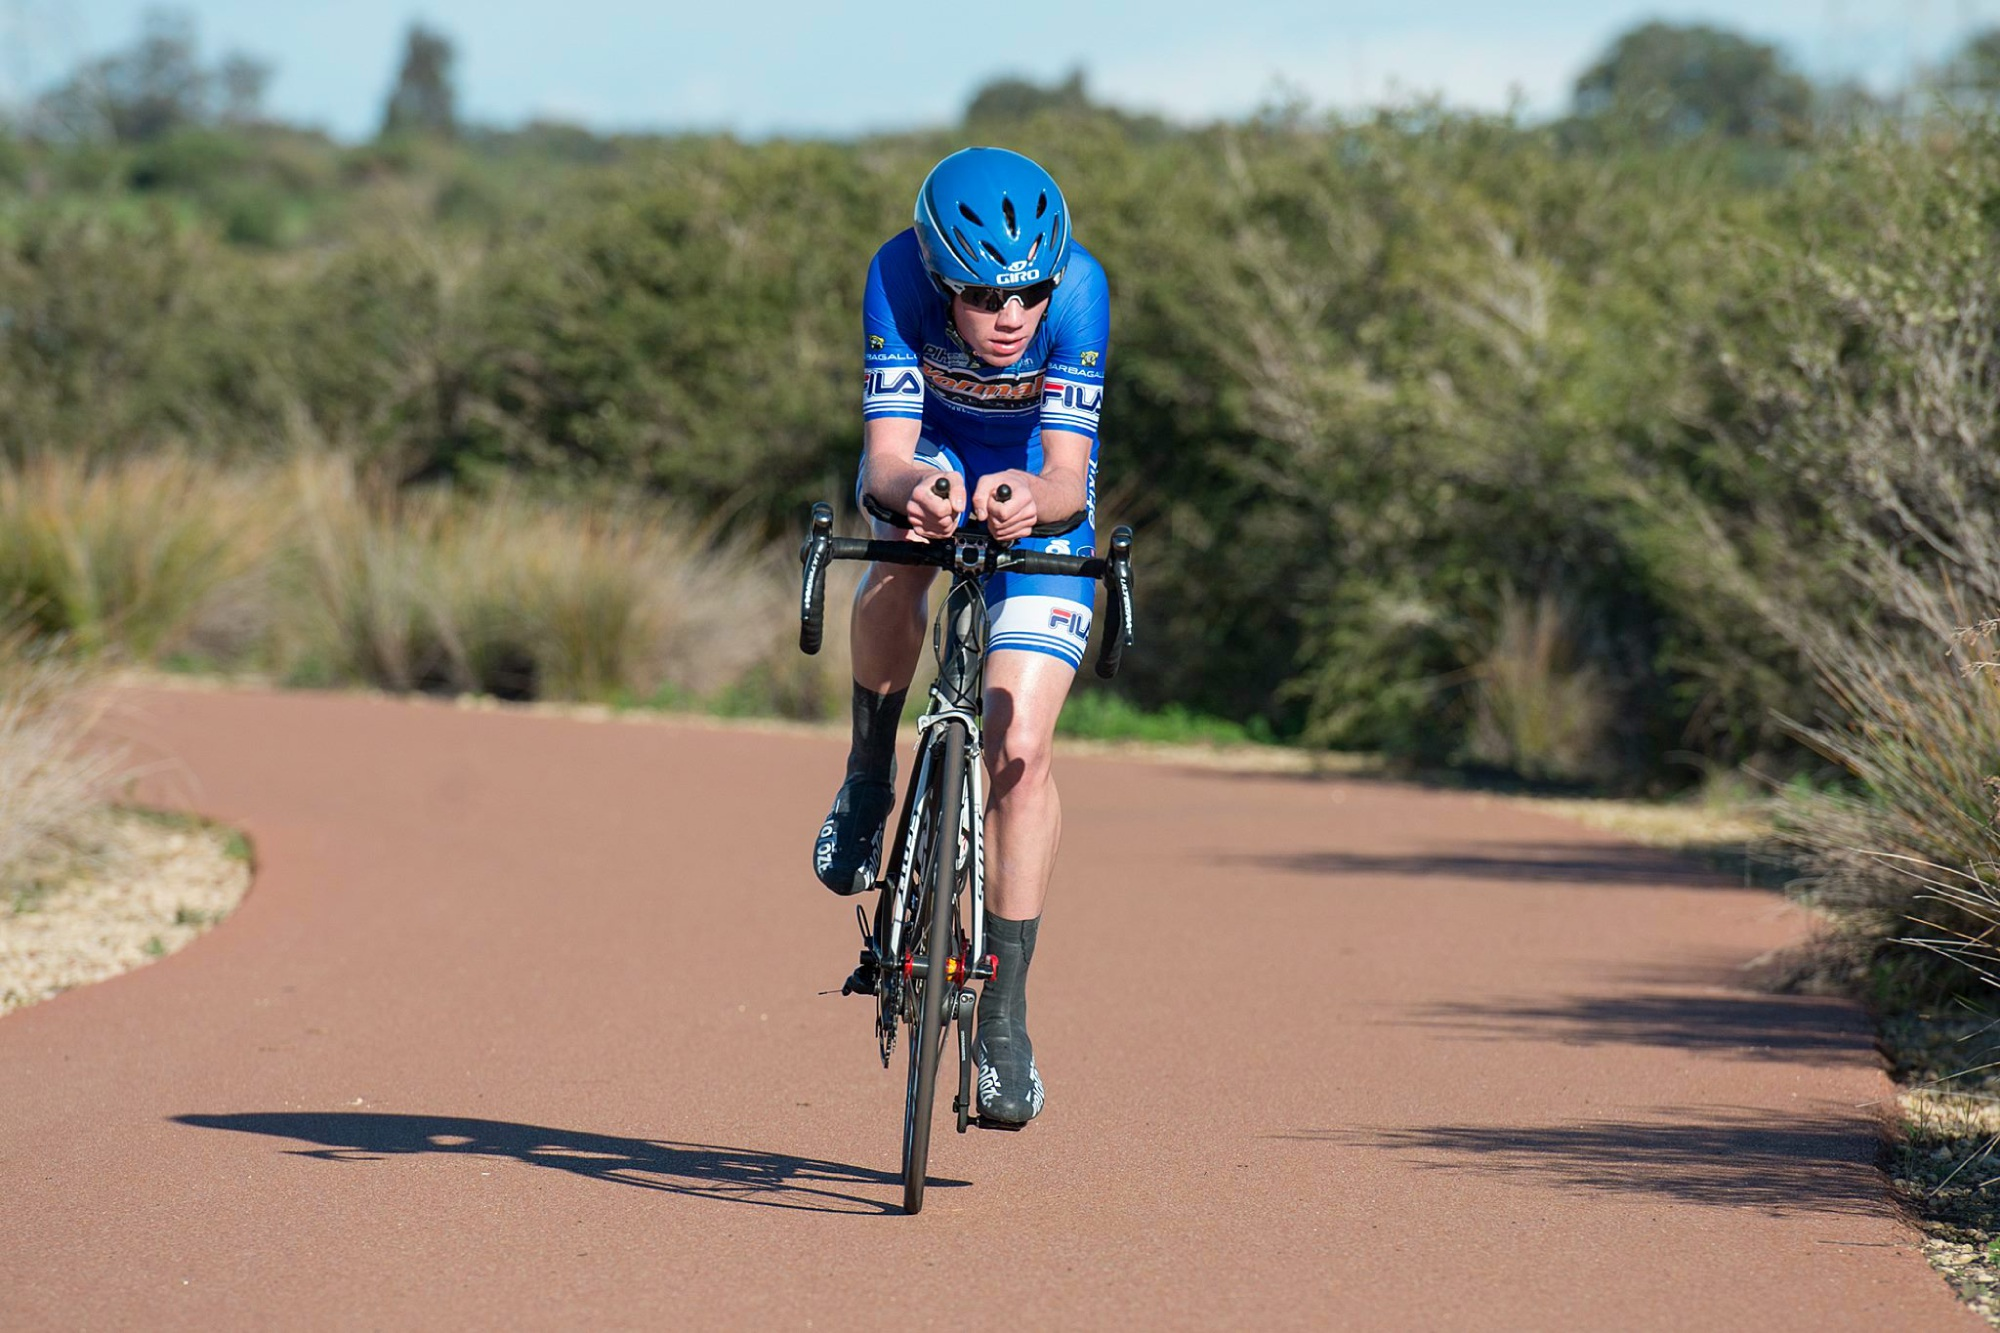 Peel District Cycling Club members do well at championships